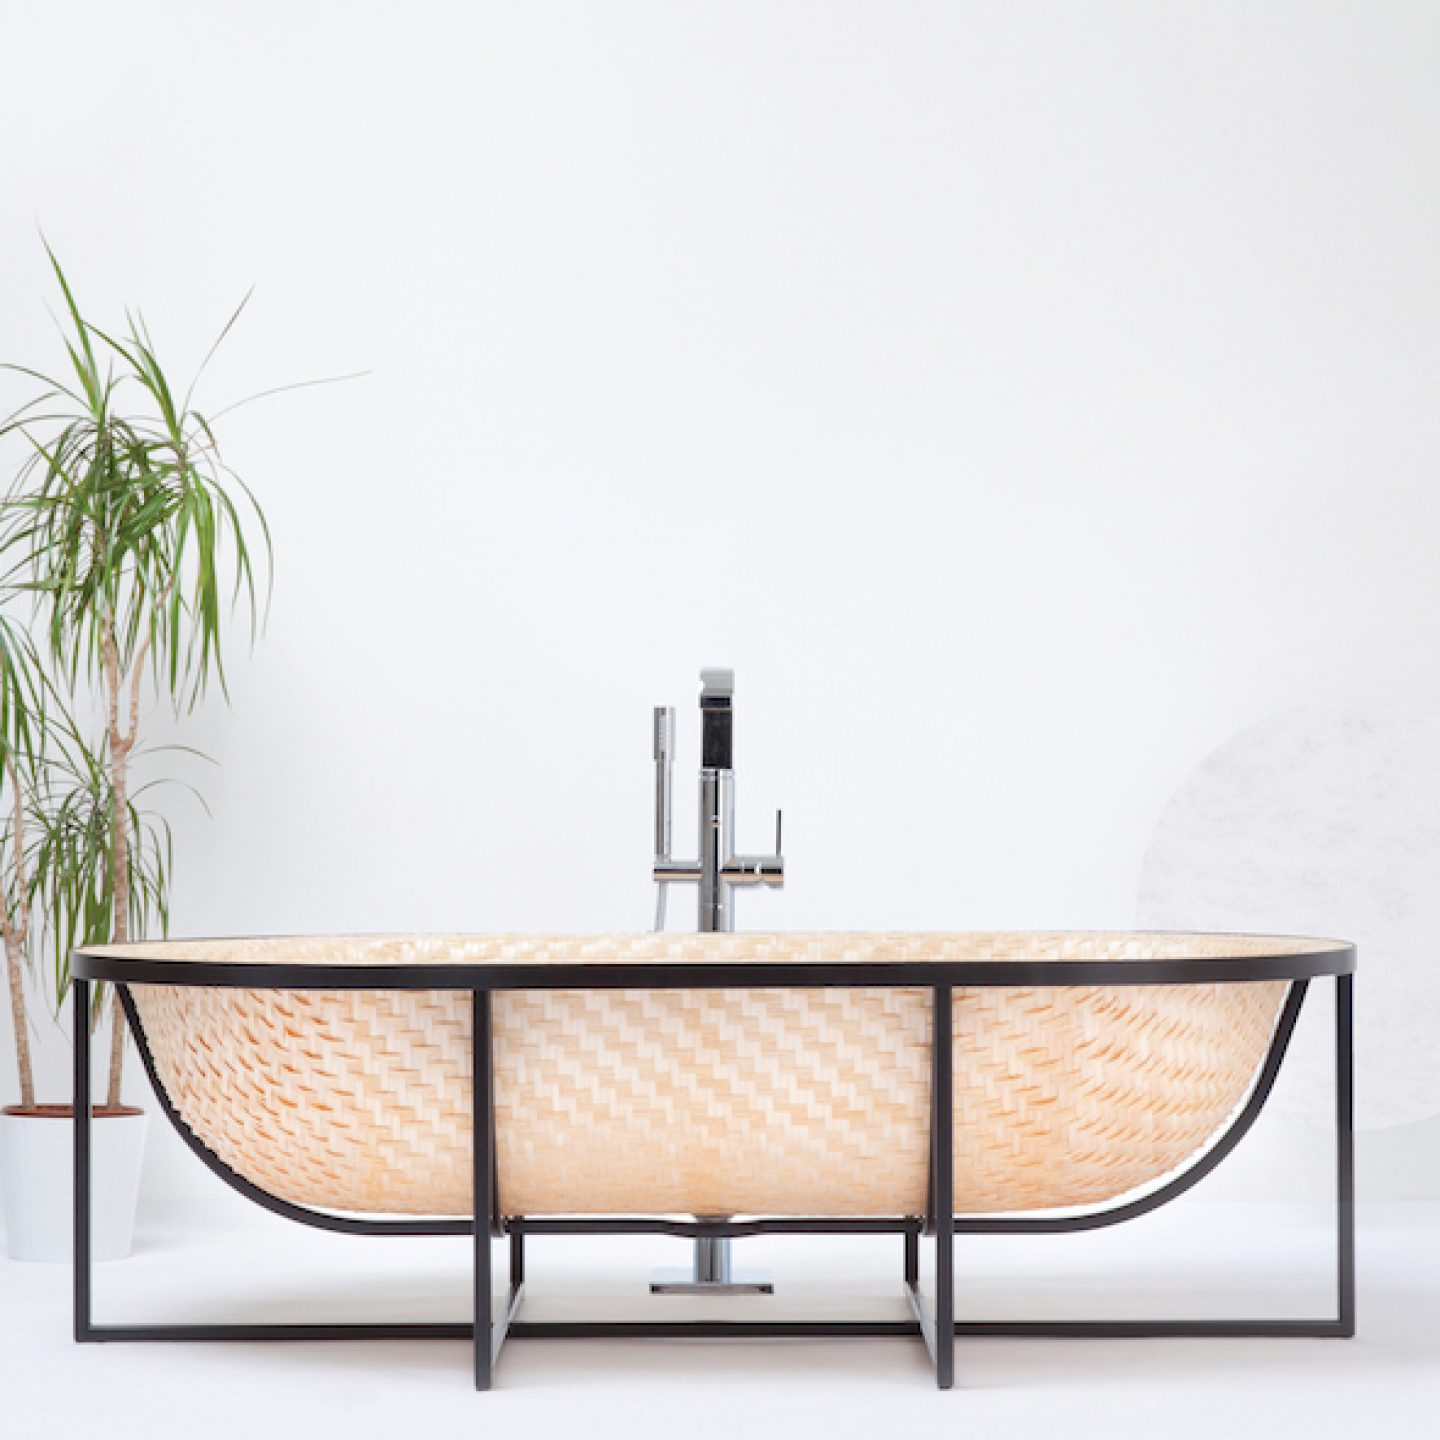 tal-engel-bathtub_design_story